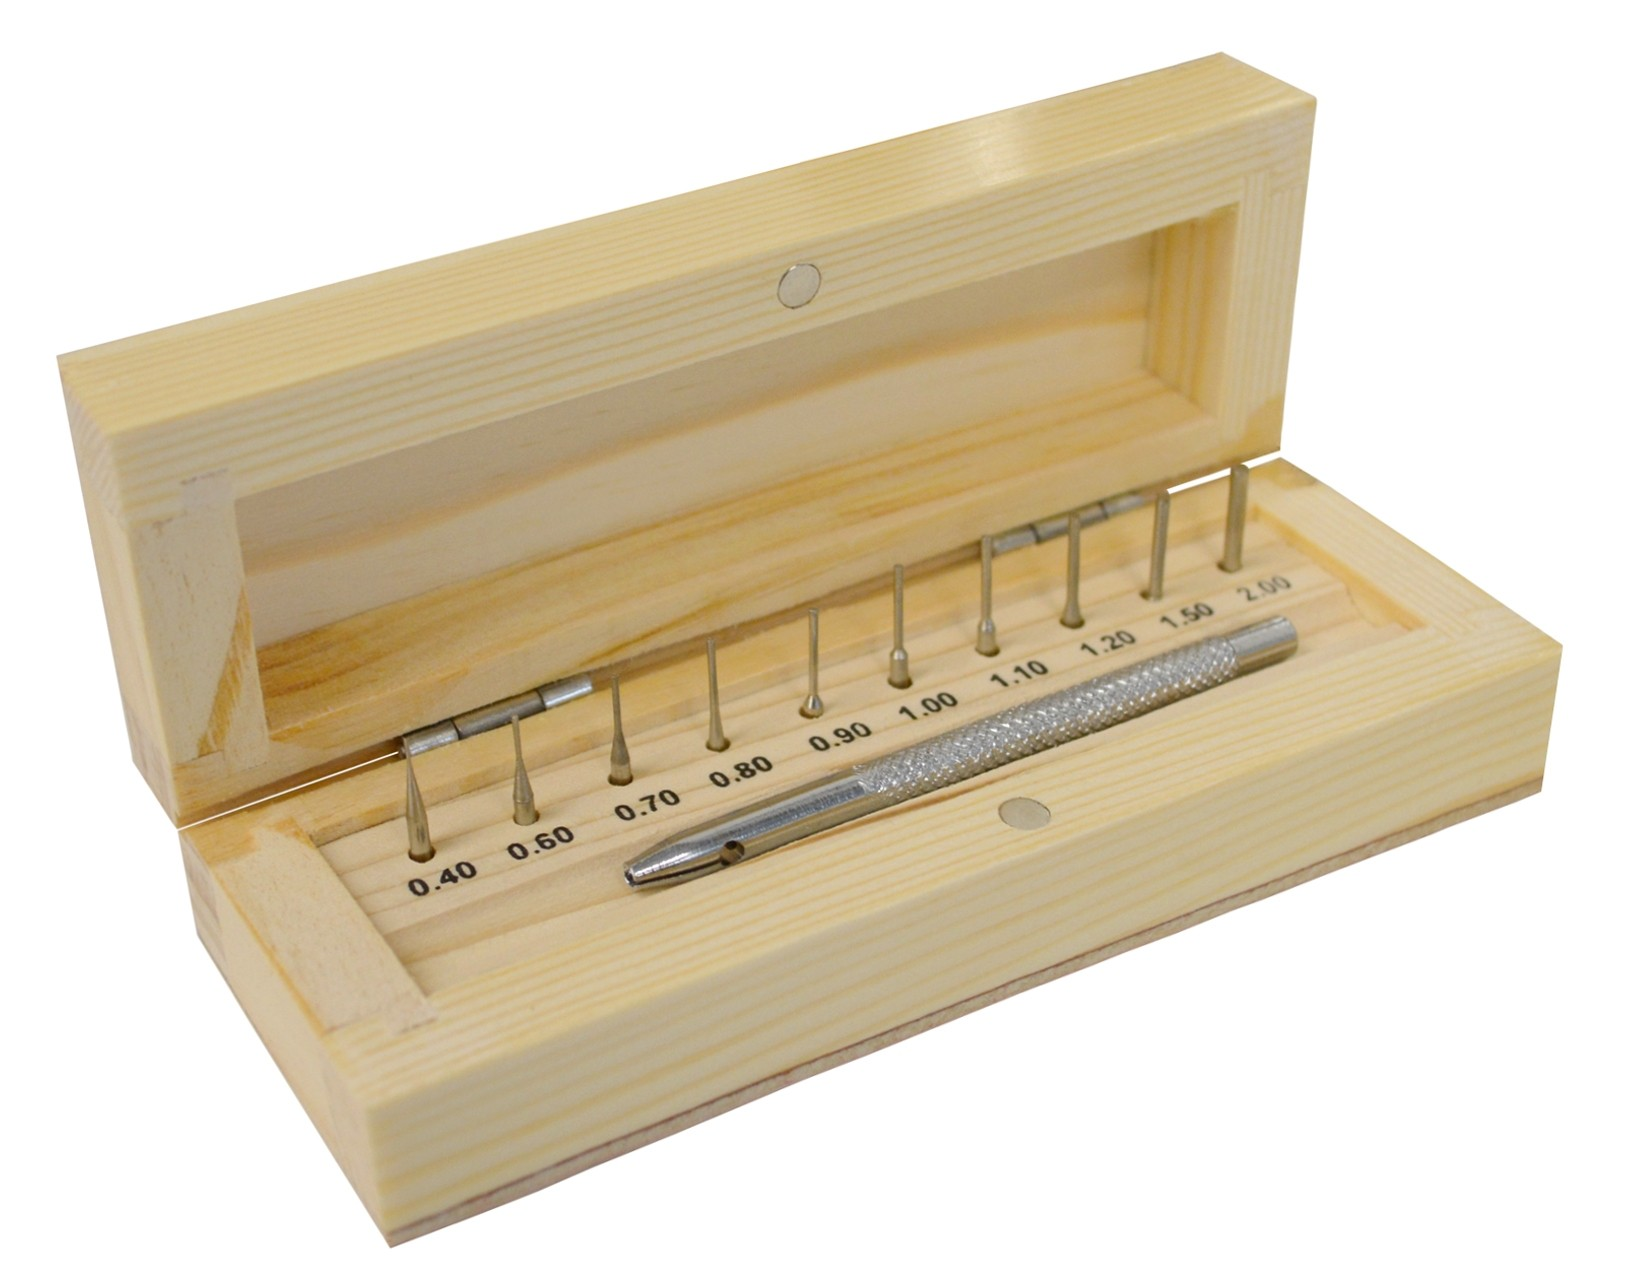 Watch Bracelet Link Pin Remover Tool With Wooden Box